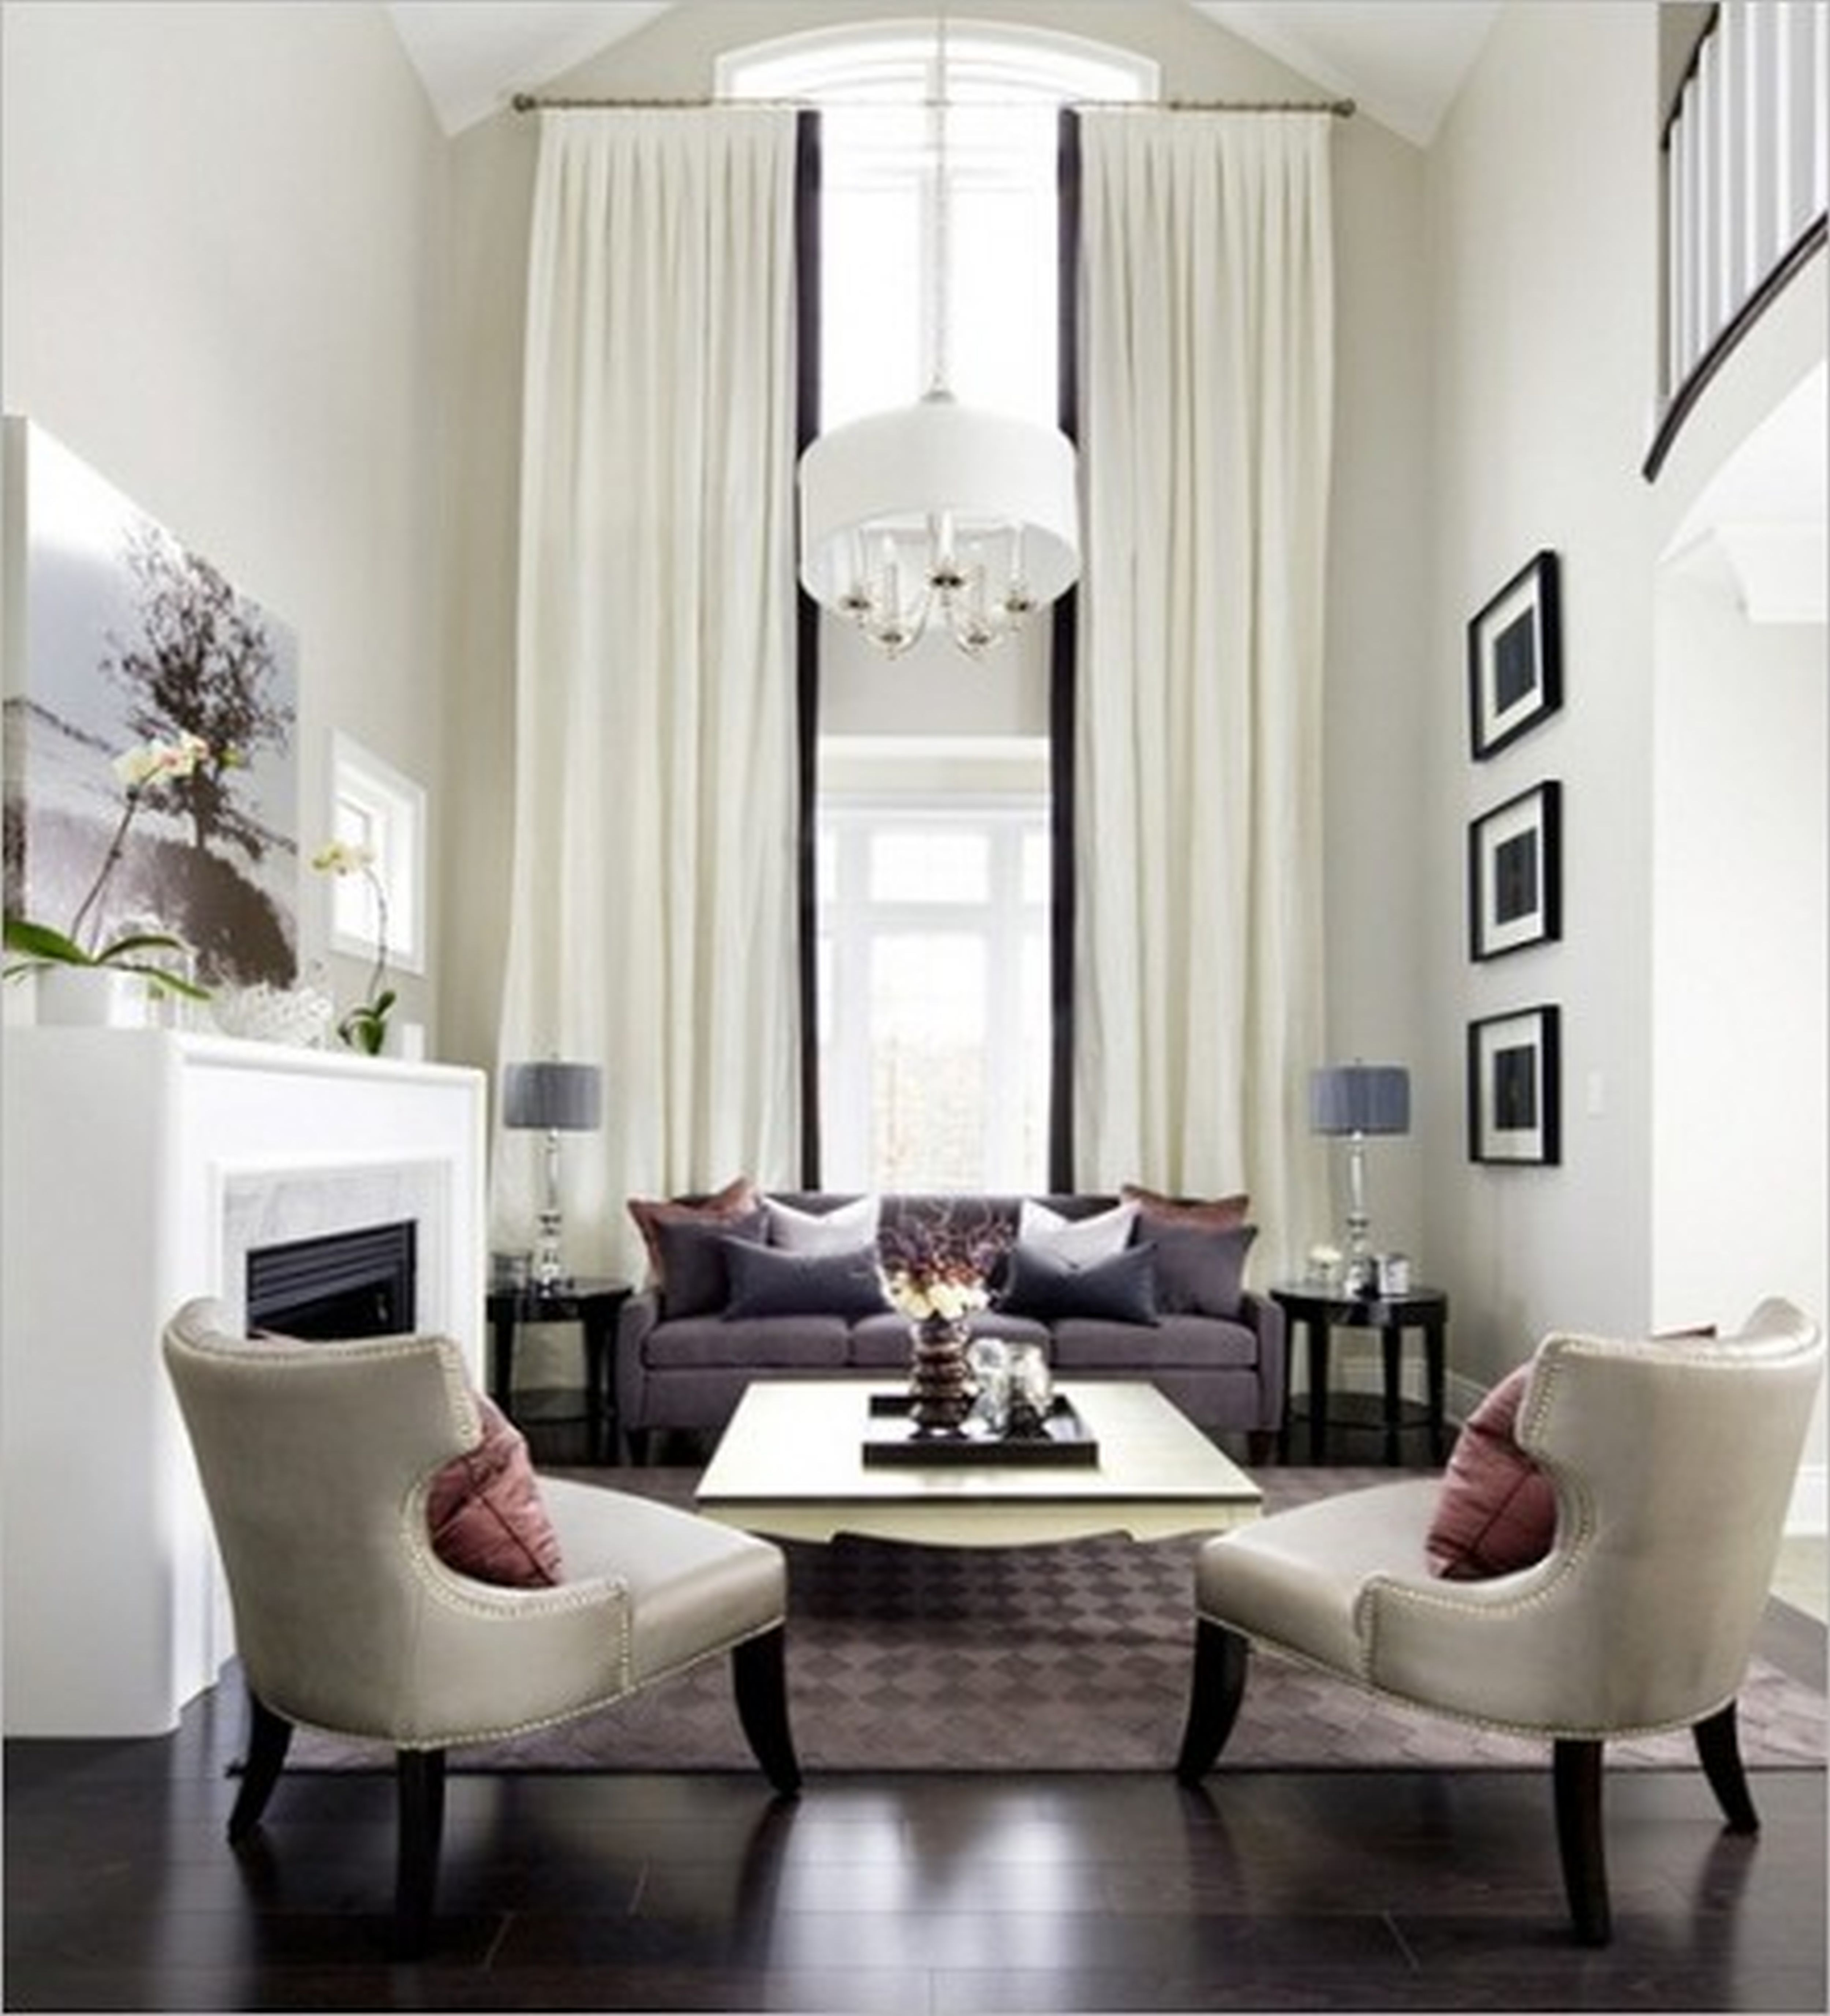 bestdesignprojects | Contemporary Interior Design Projects ...